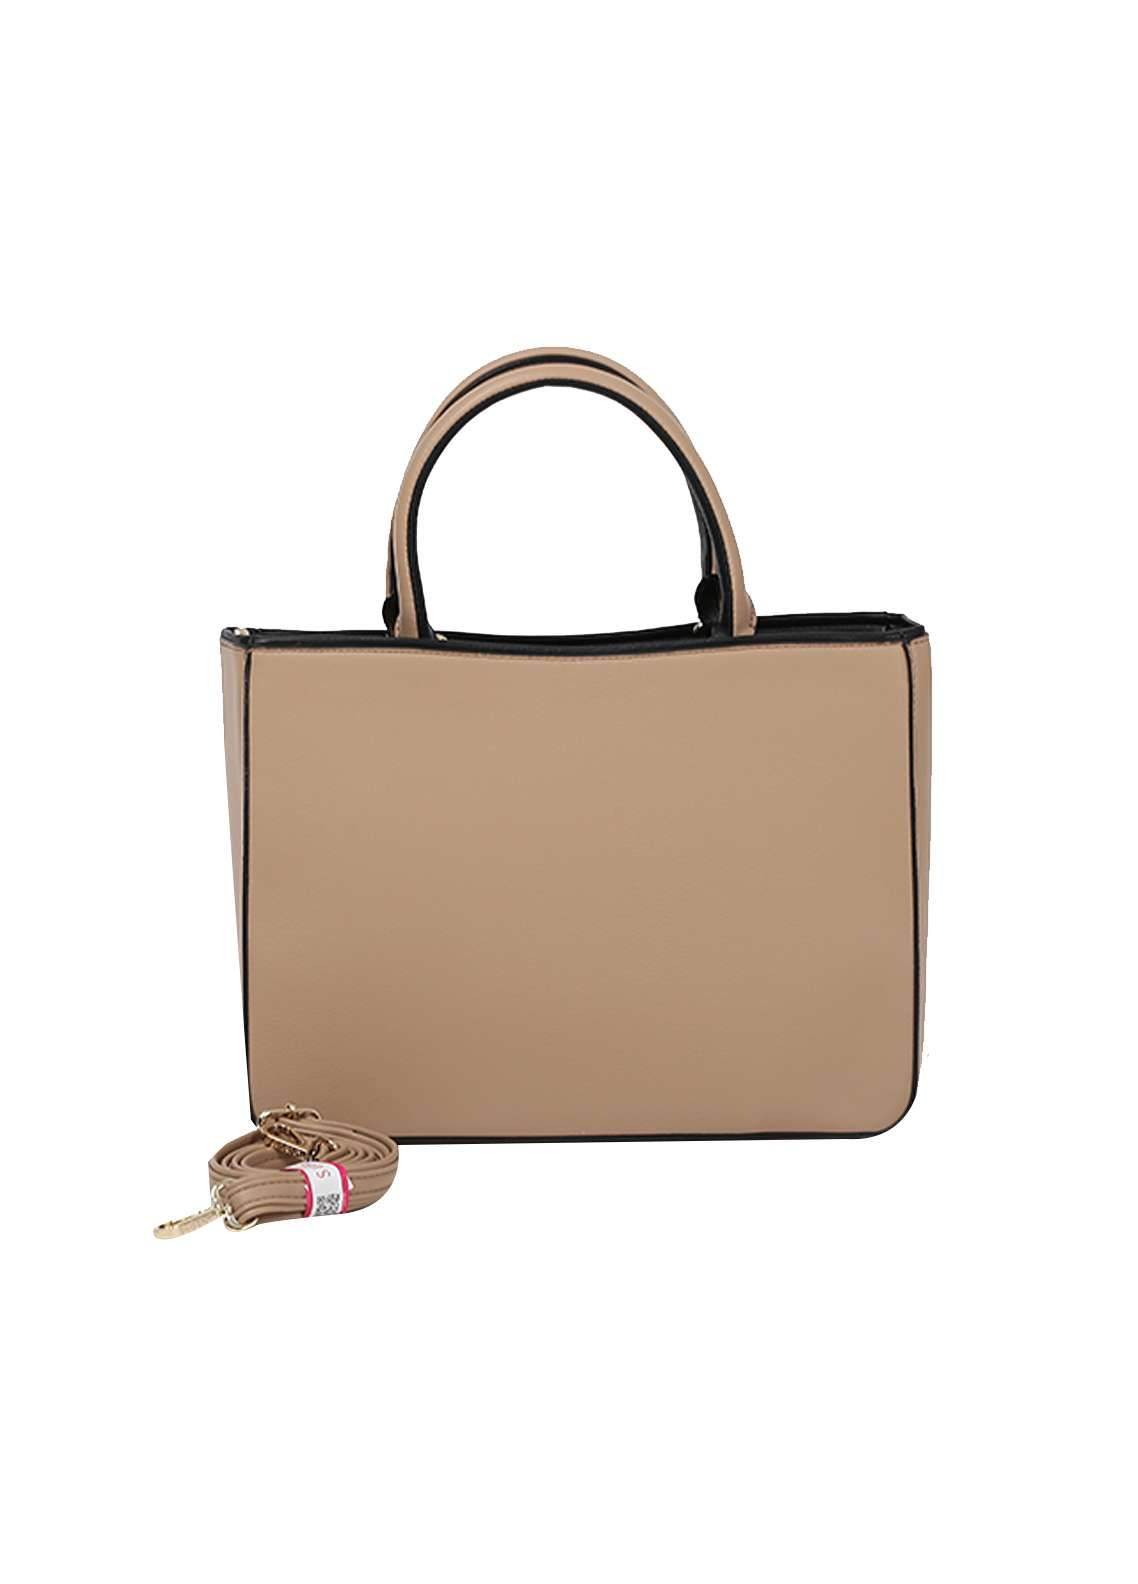 Susen PU Leather Satchels Bag for Women - Silver with